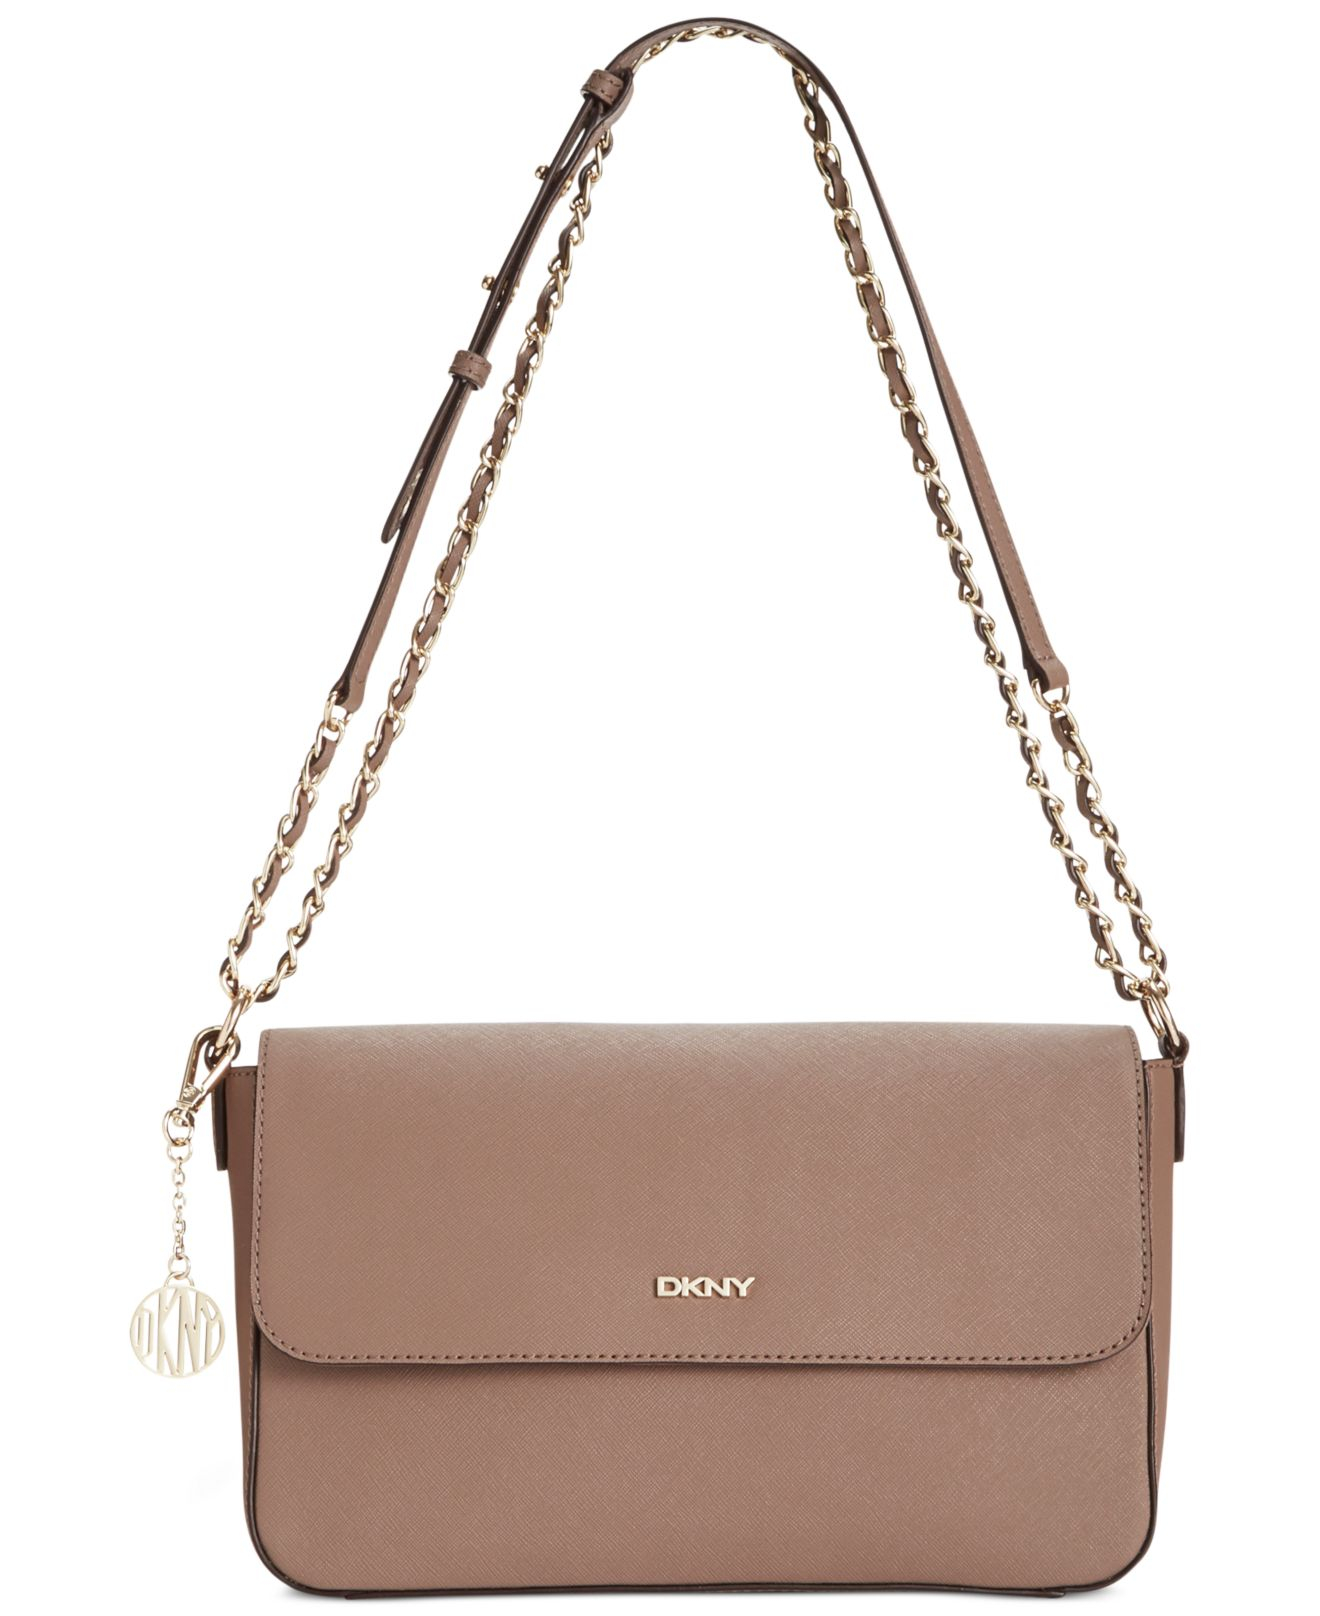 7e5cfb8606 Lyst Dkny Bryant Park Saffiano Medium Flap Crossbody In Brown